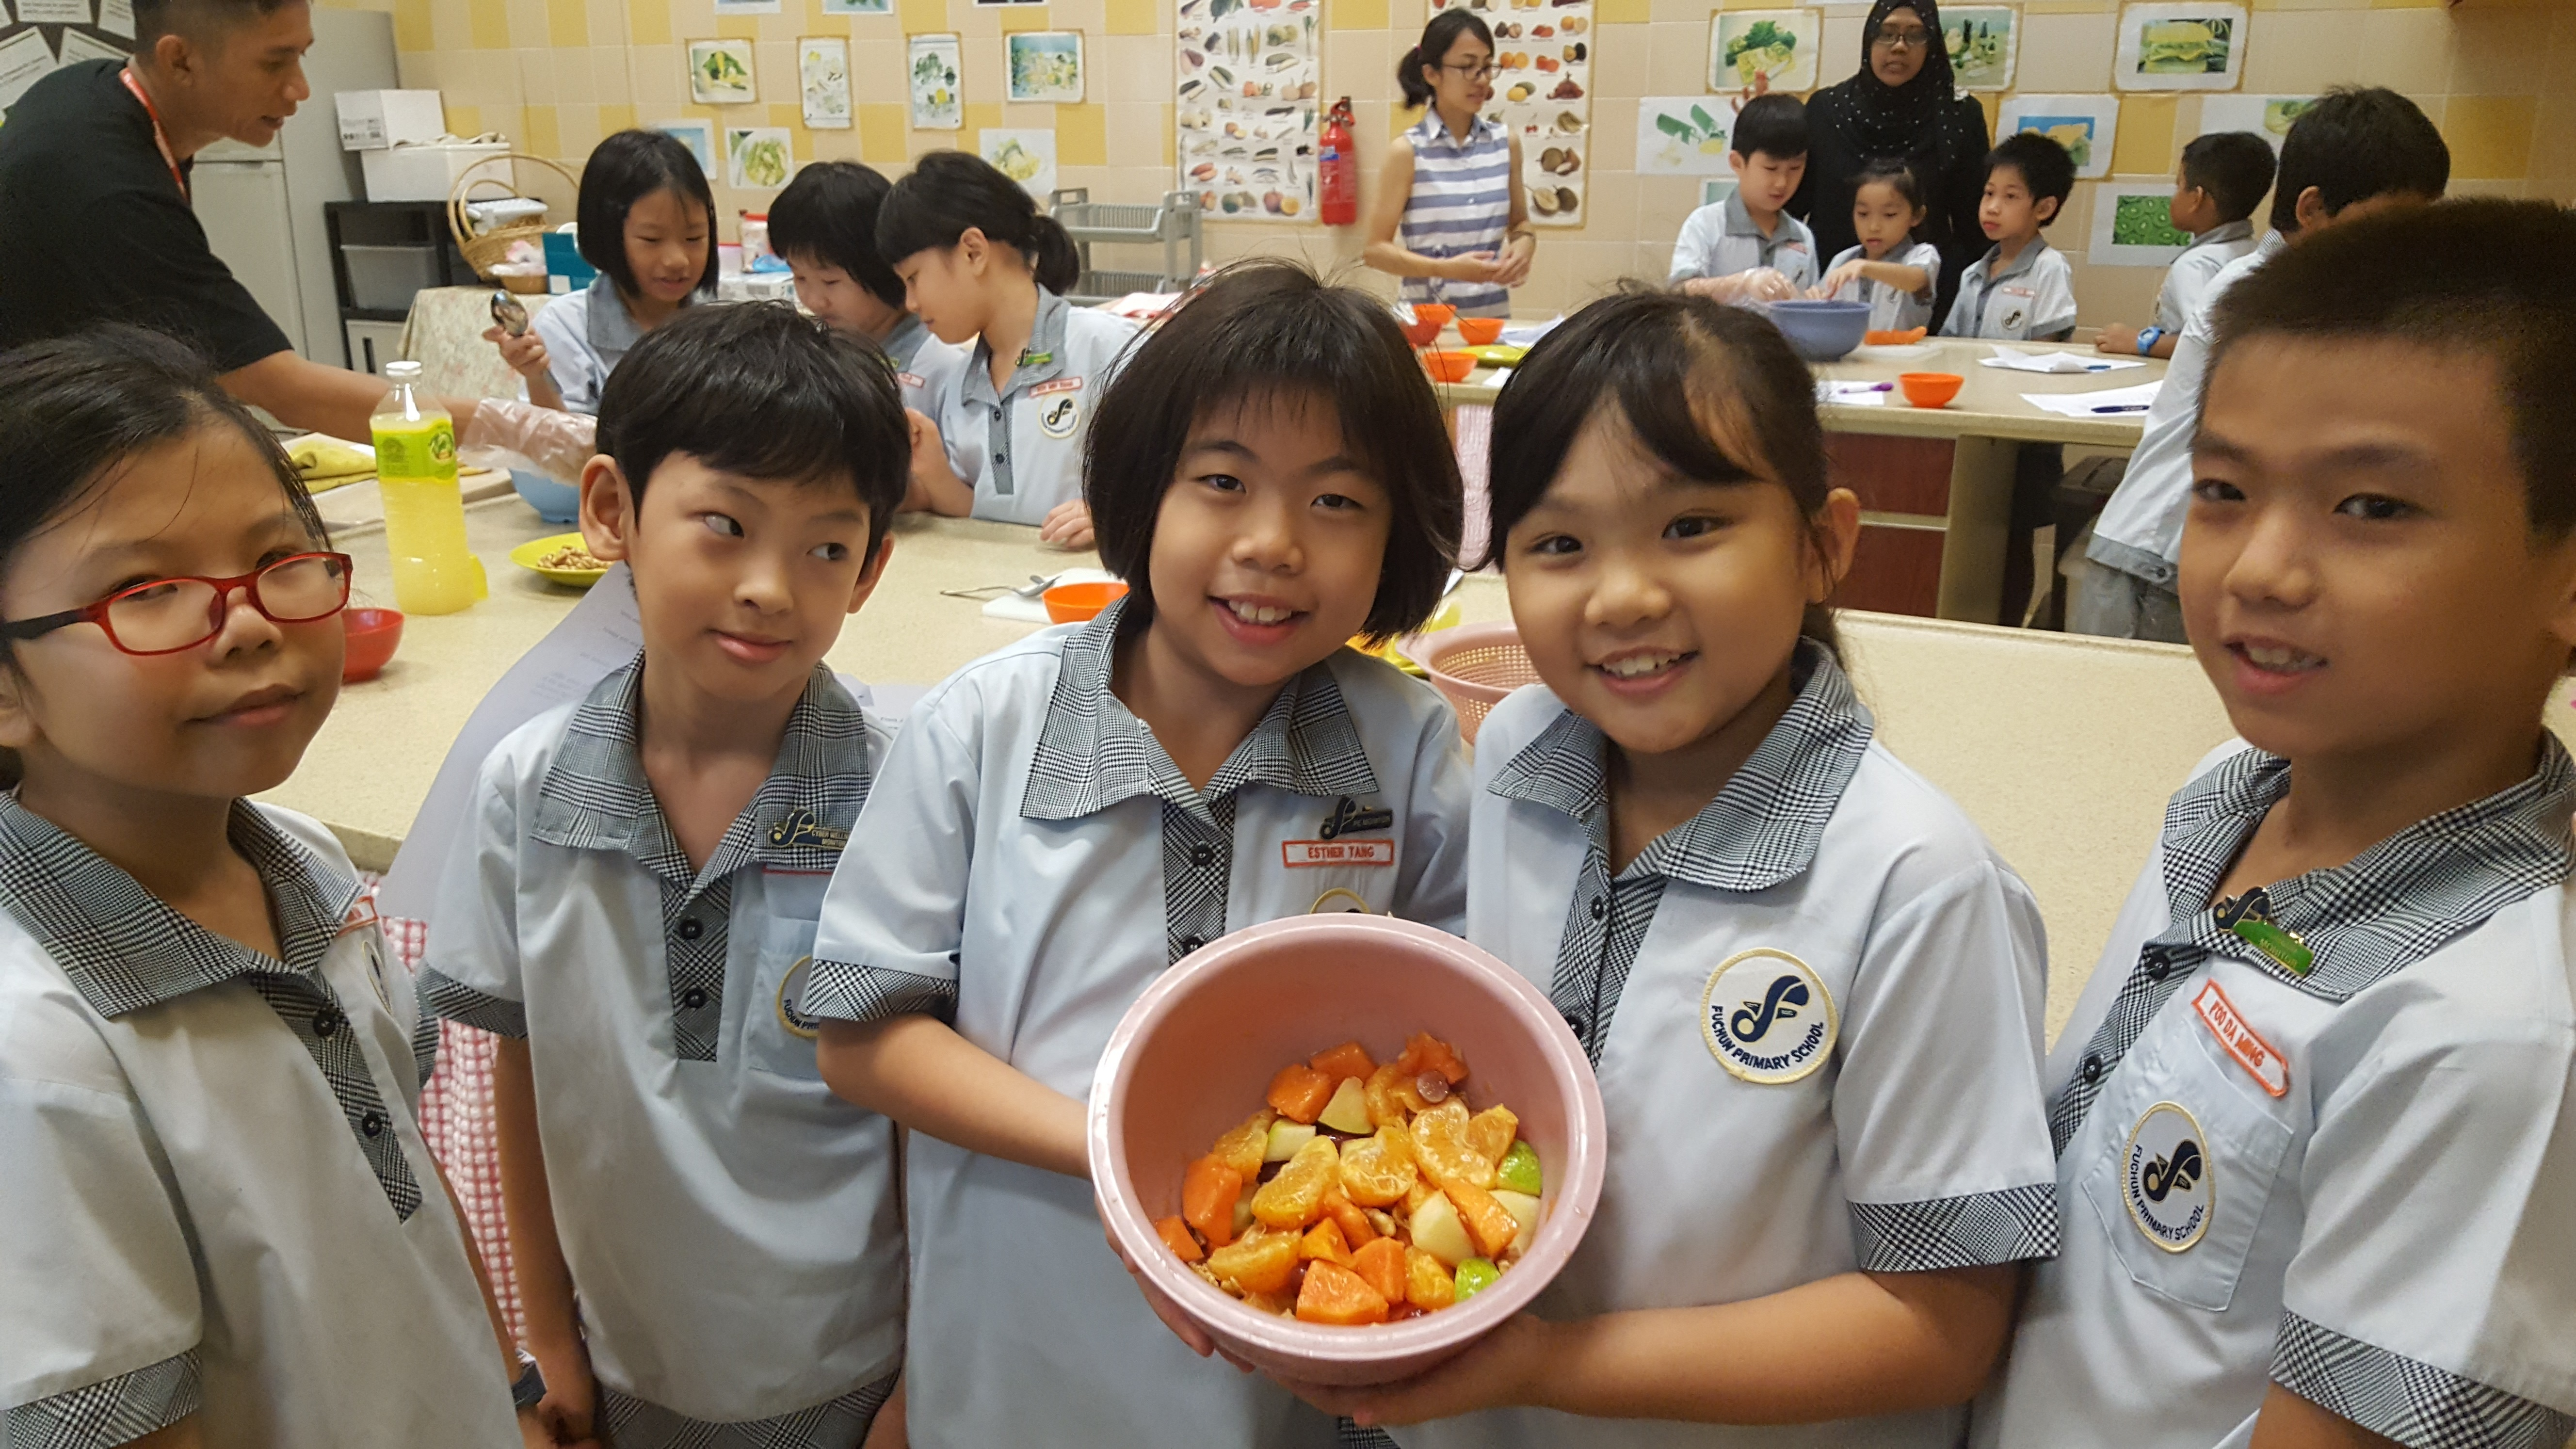 P3_Homeskills_Pupils proudly showing their furit salad.jpg